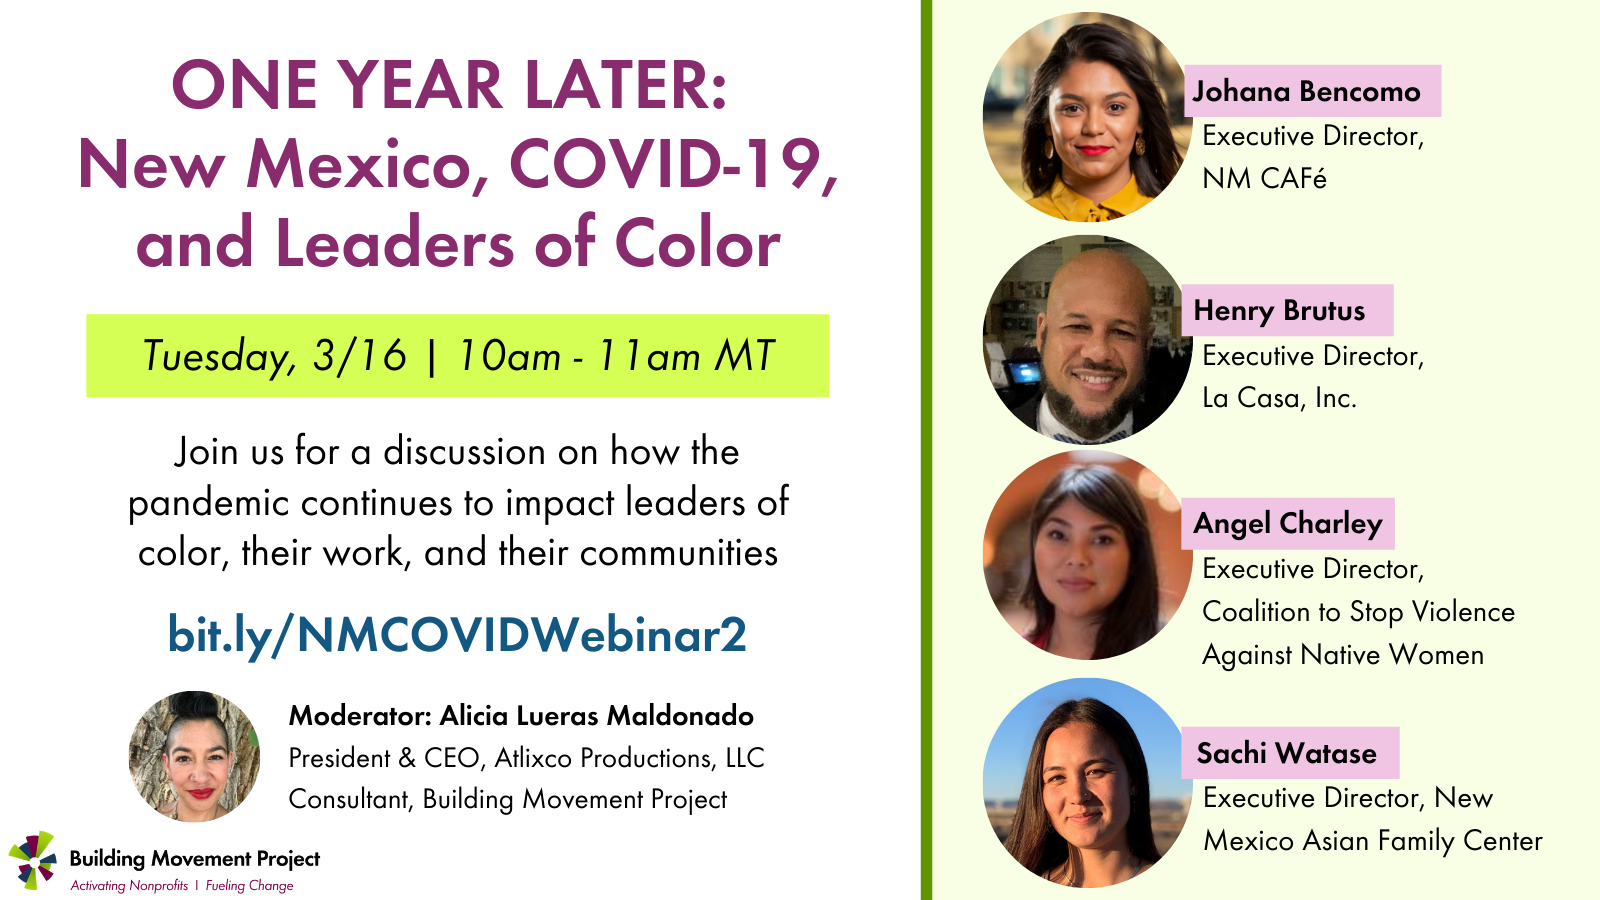 ONE YEAR LATER: New Mexico, COVID-19, and Leaders of Color